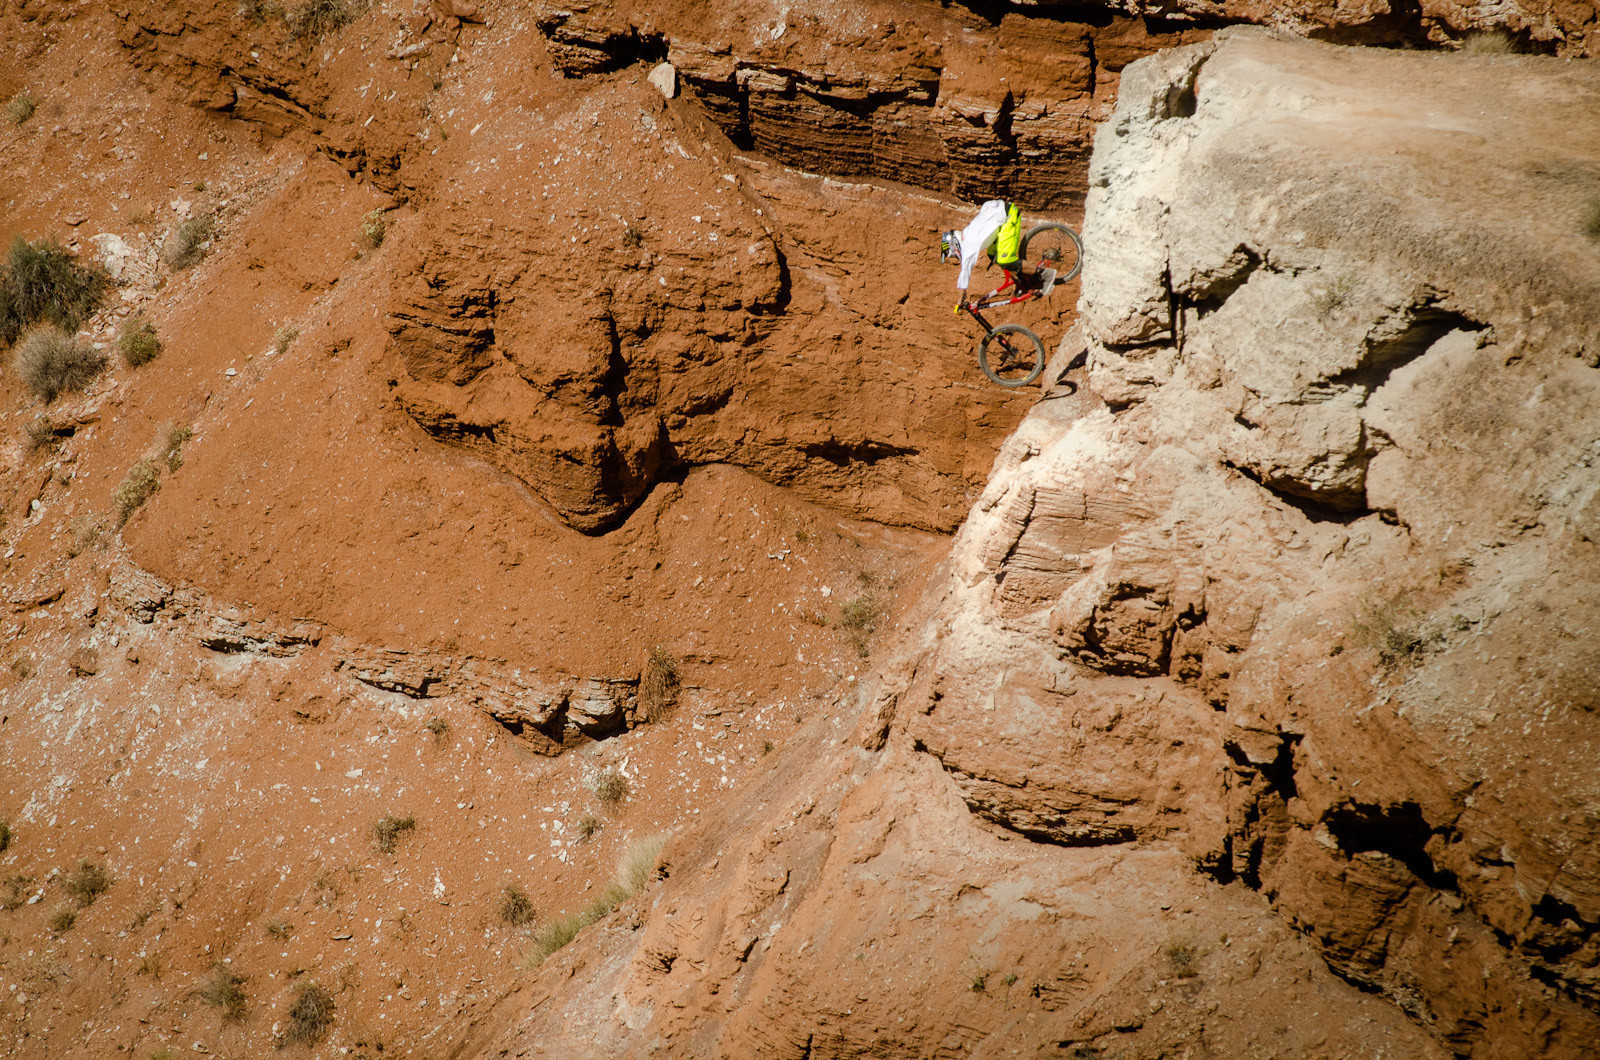 Cam Zink, Vert Drop-in at Red Bull Rampage 2012 - Cam Zink, Pro Rider Photo Gallery - Mountain Biking Pictures - Vital MTB